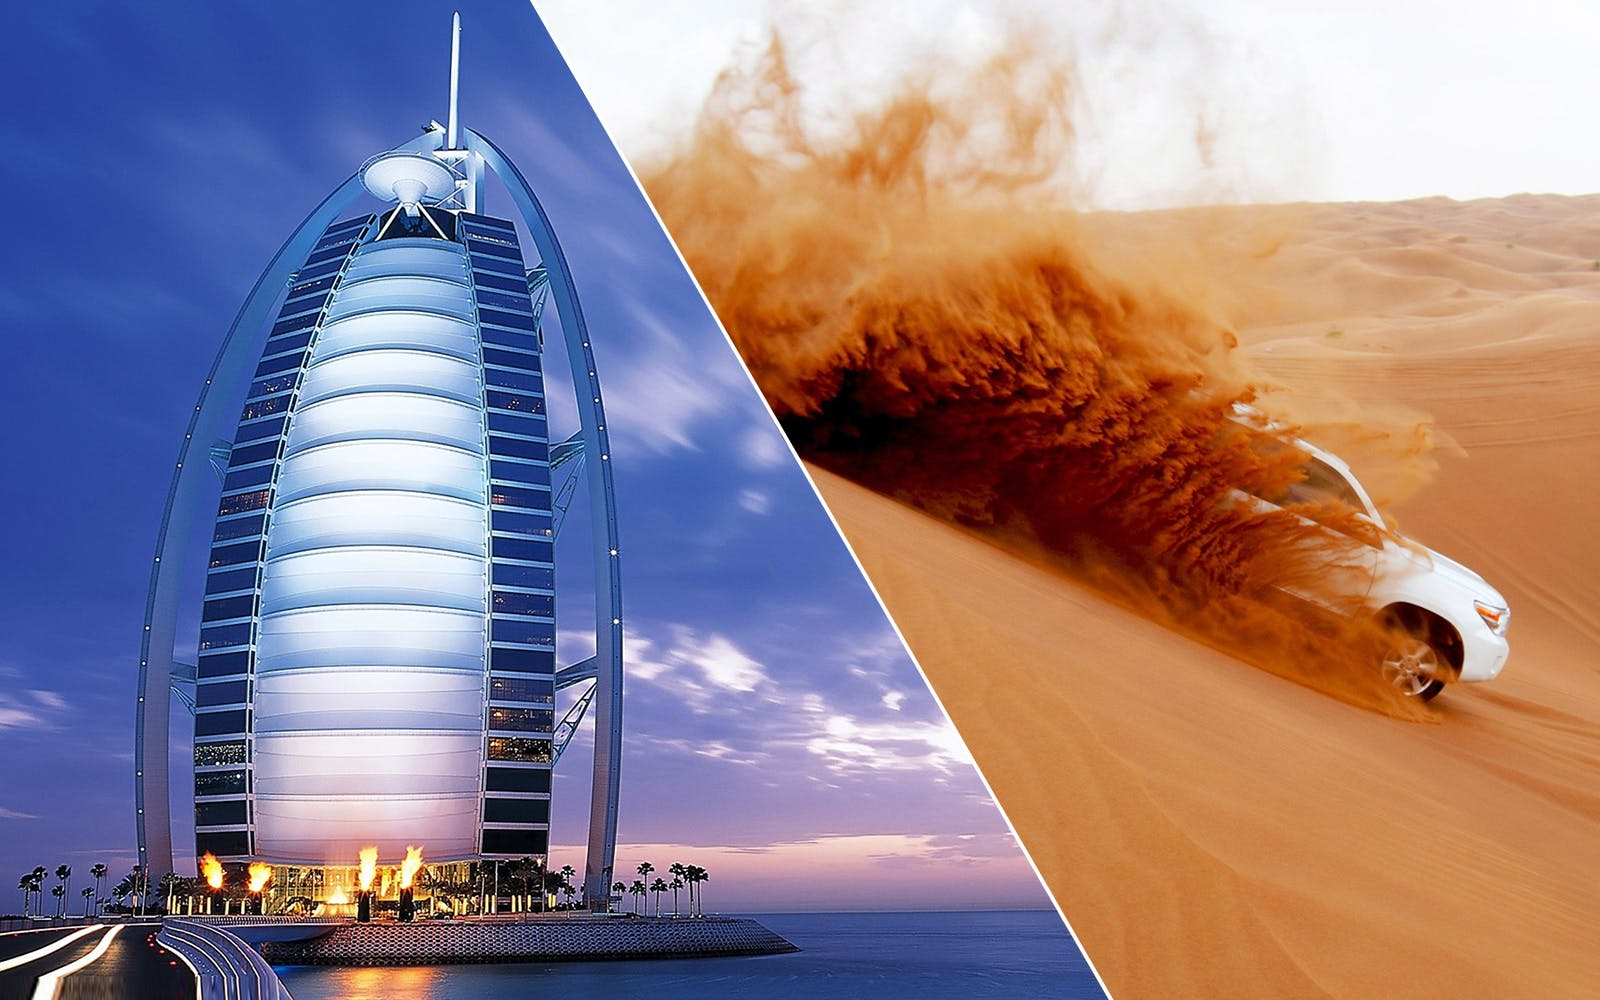 Dubai City Tour & Desert Safari Combo